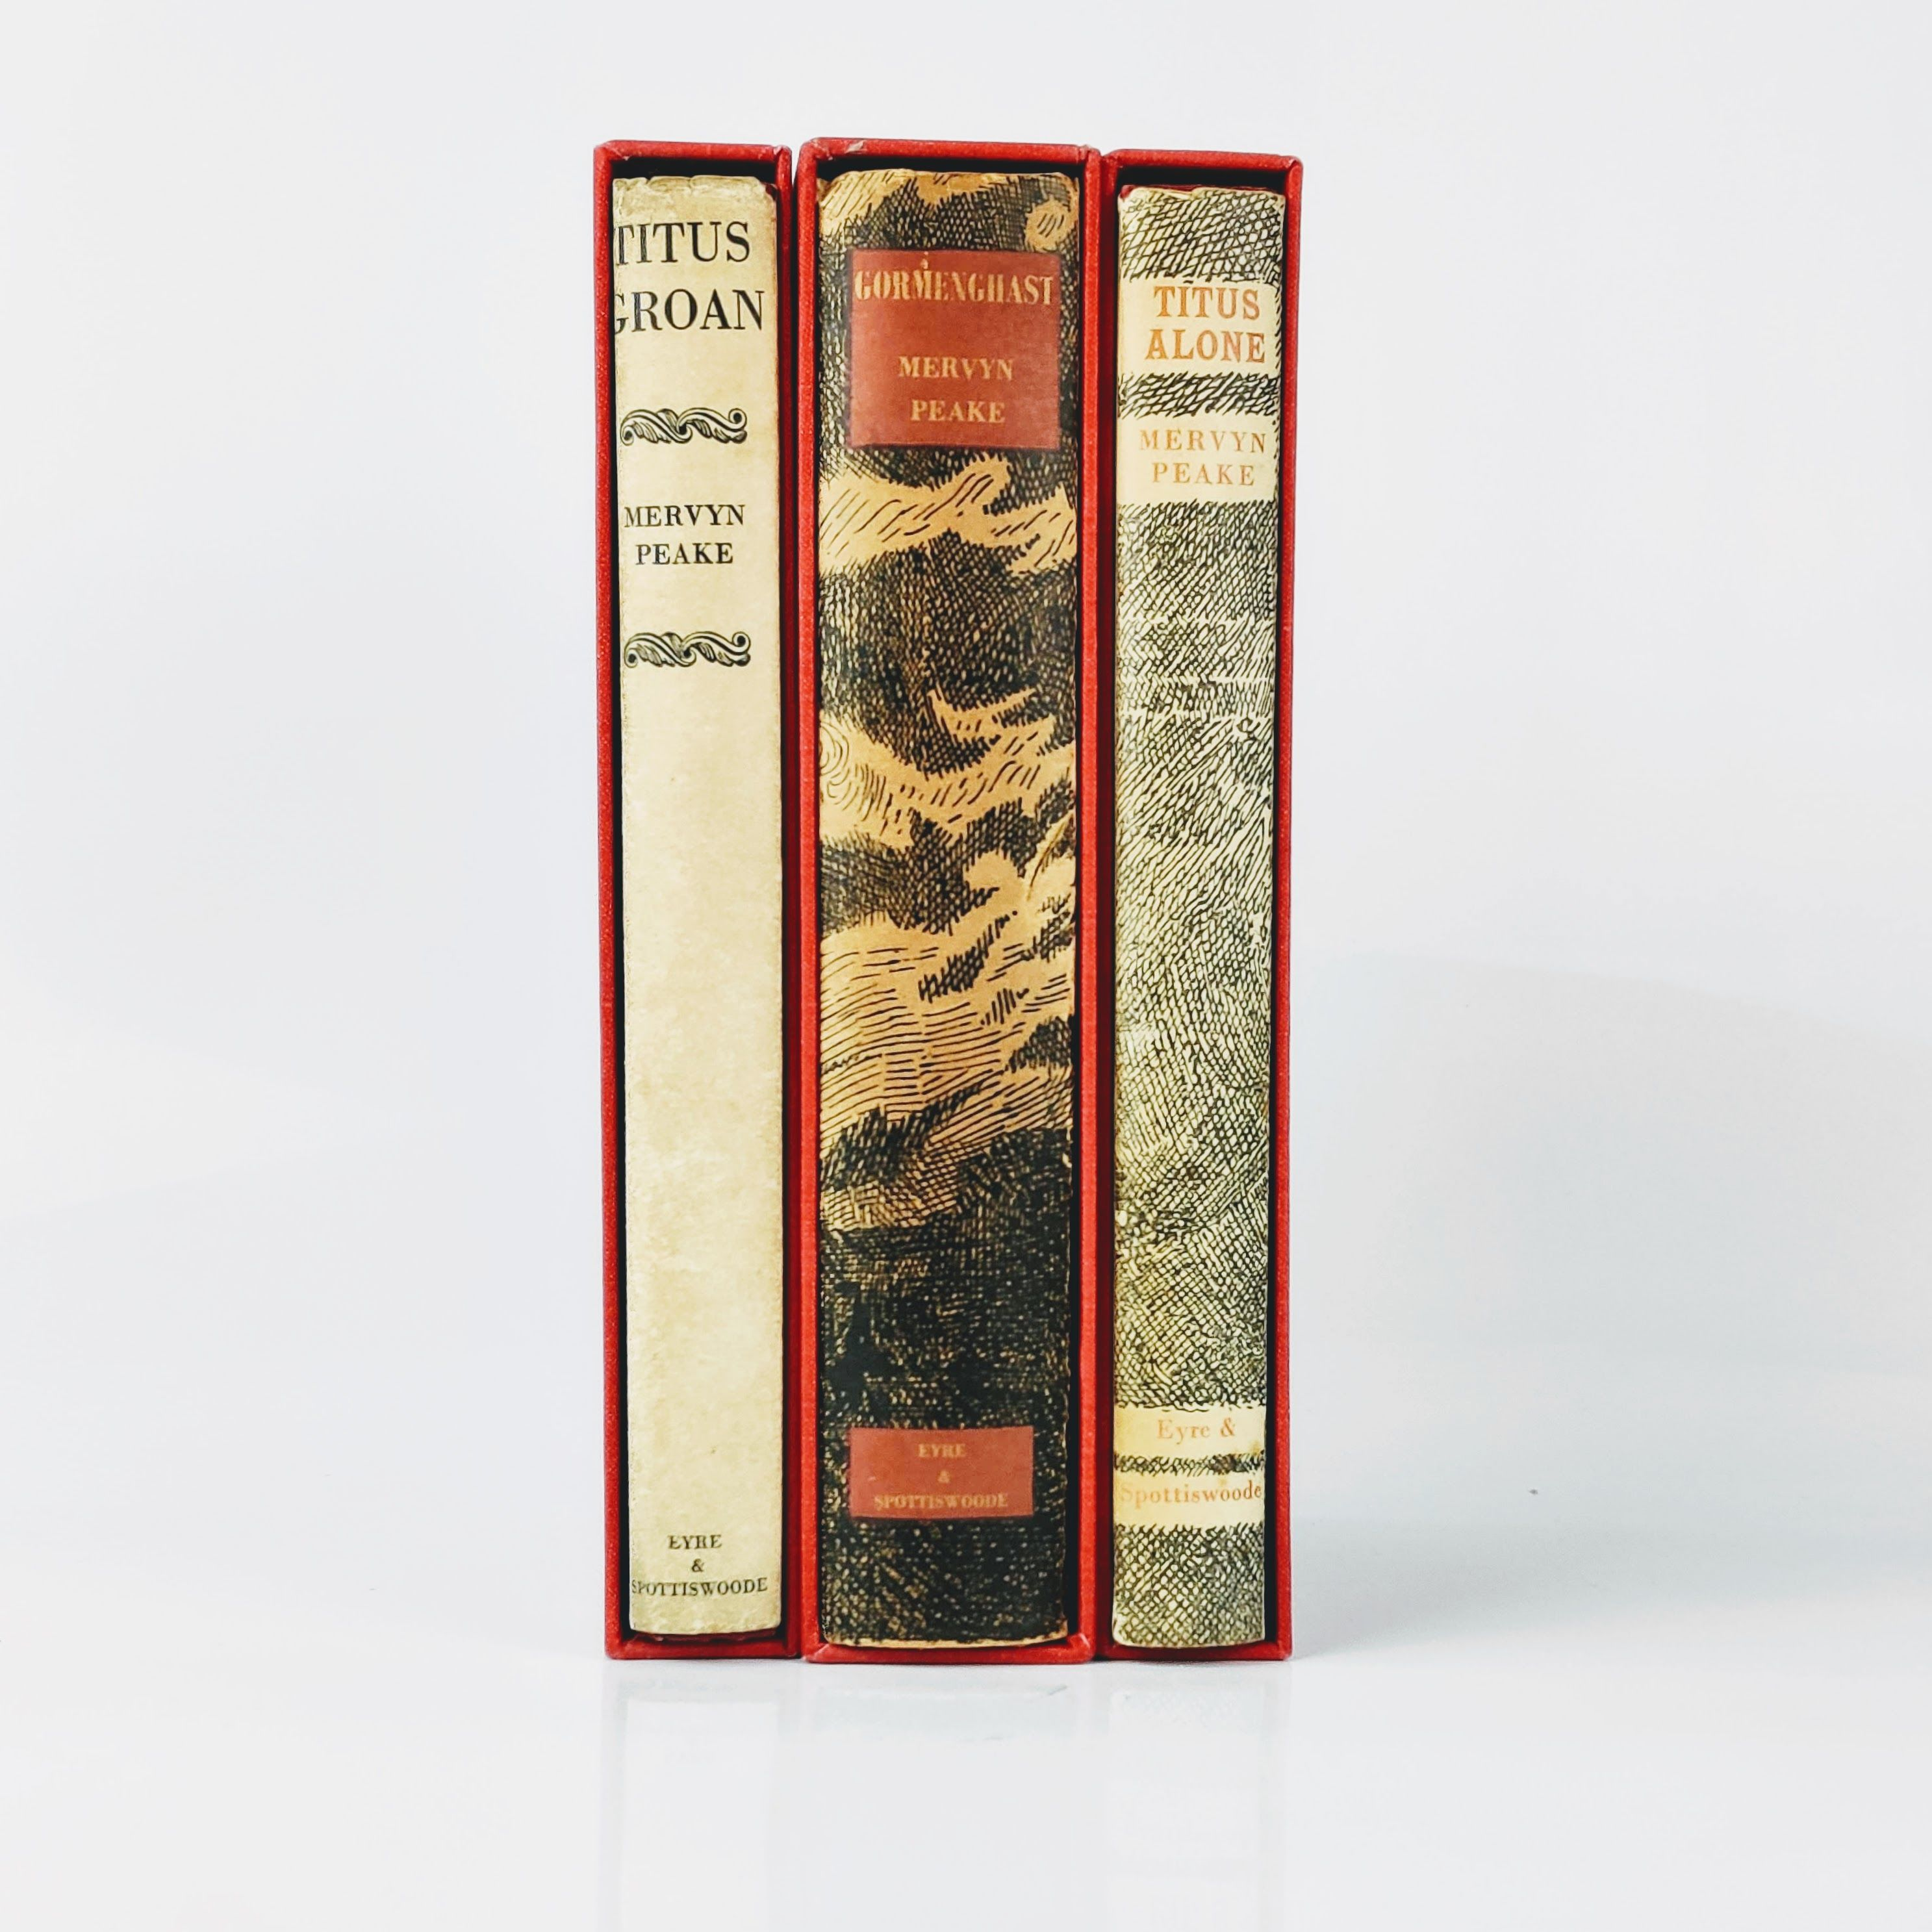 The Gormenghast Trilogy: Titus Groan, Gormenghast and Titus Alone (photo 2)